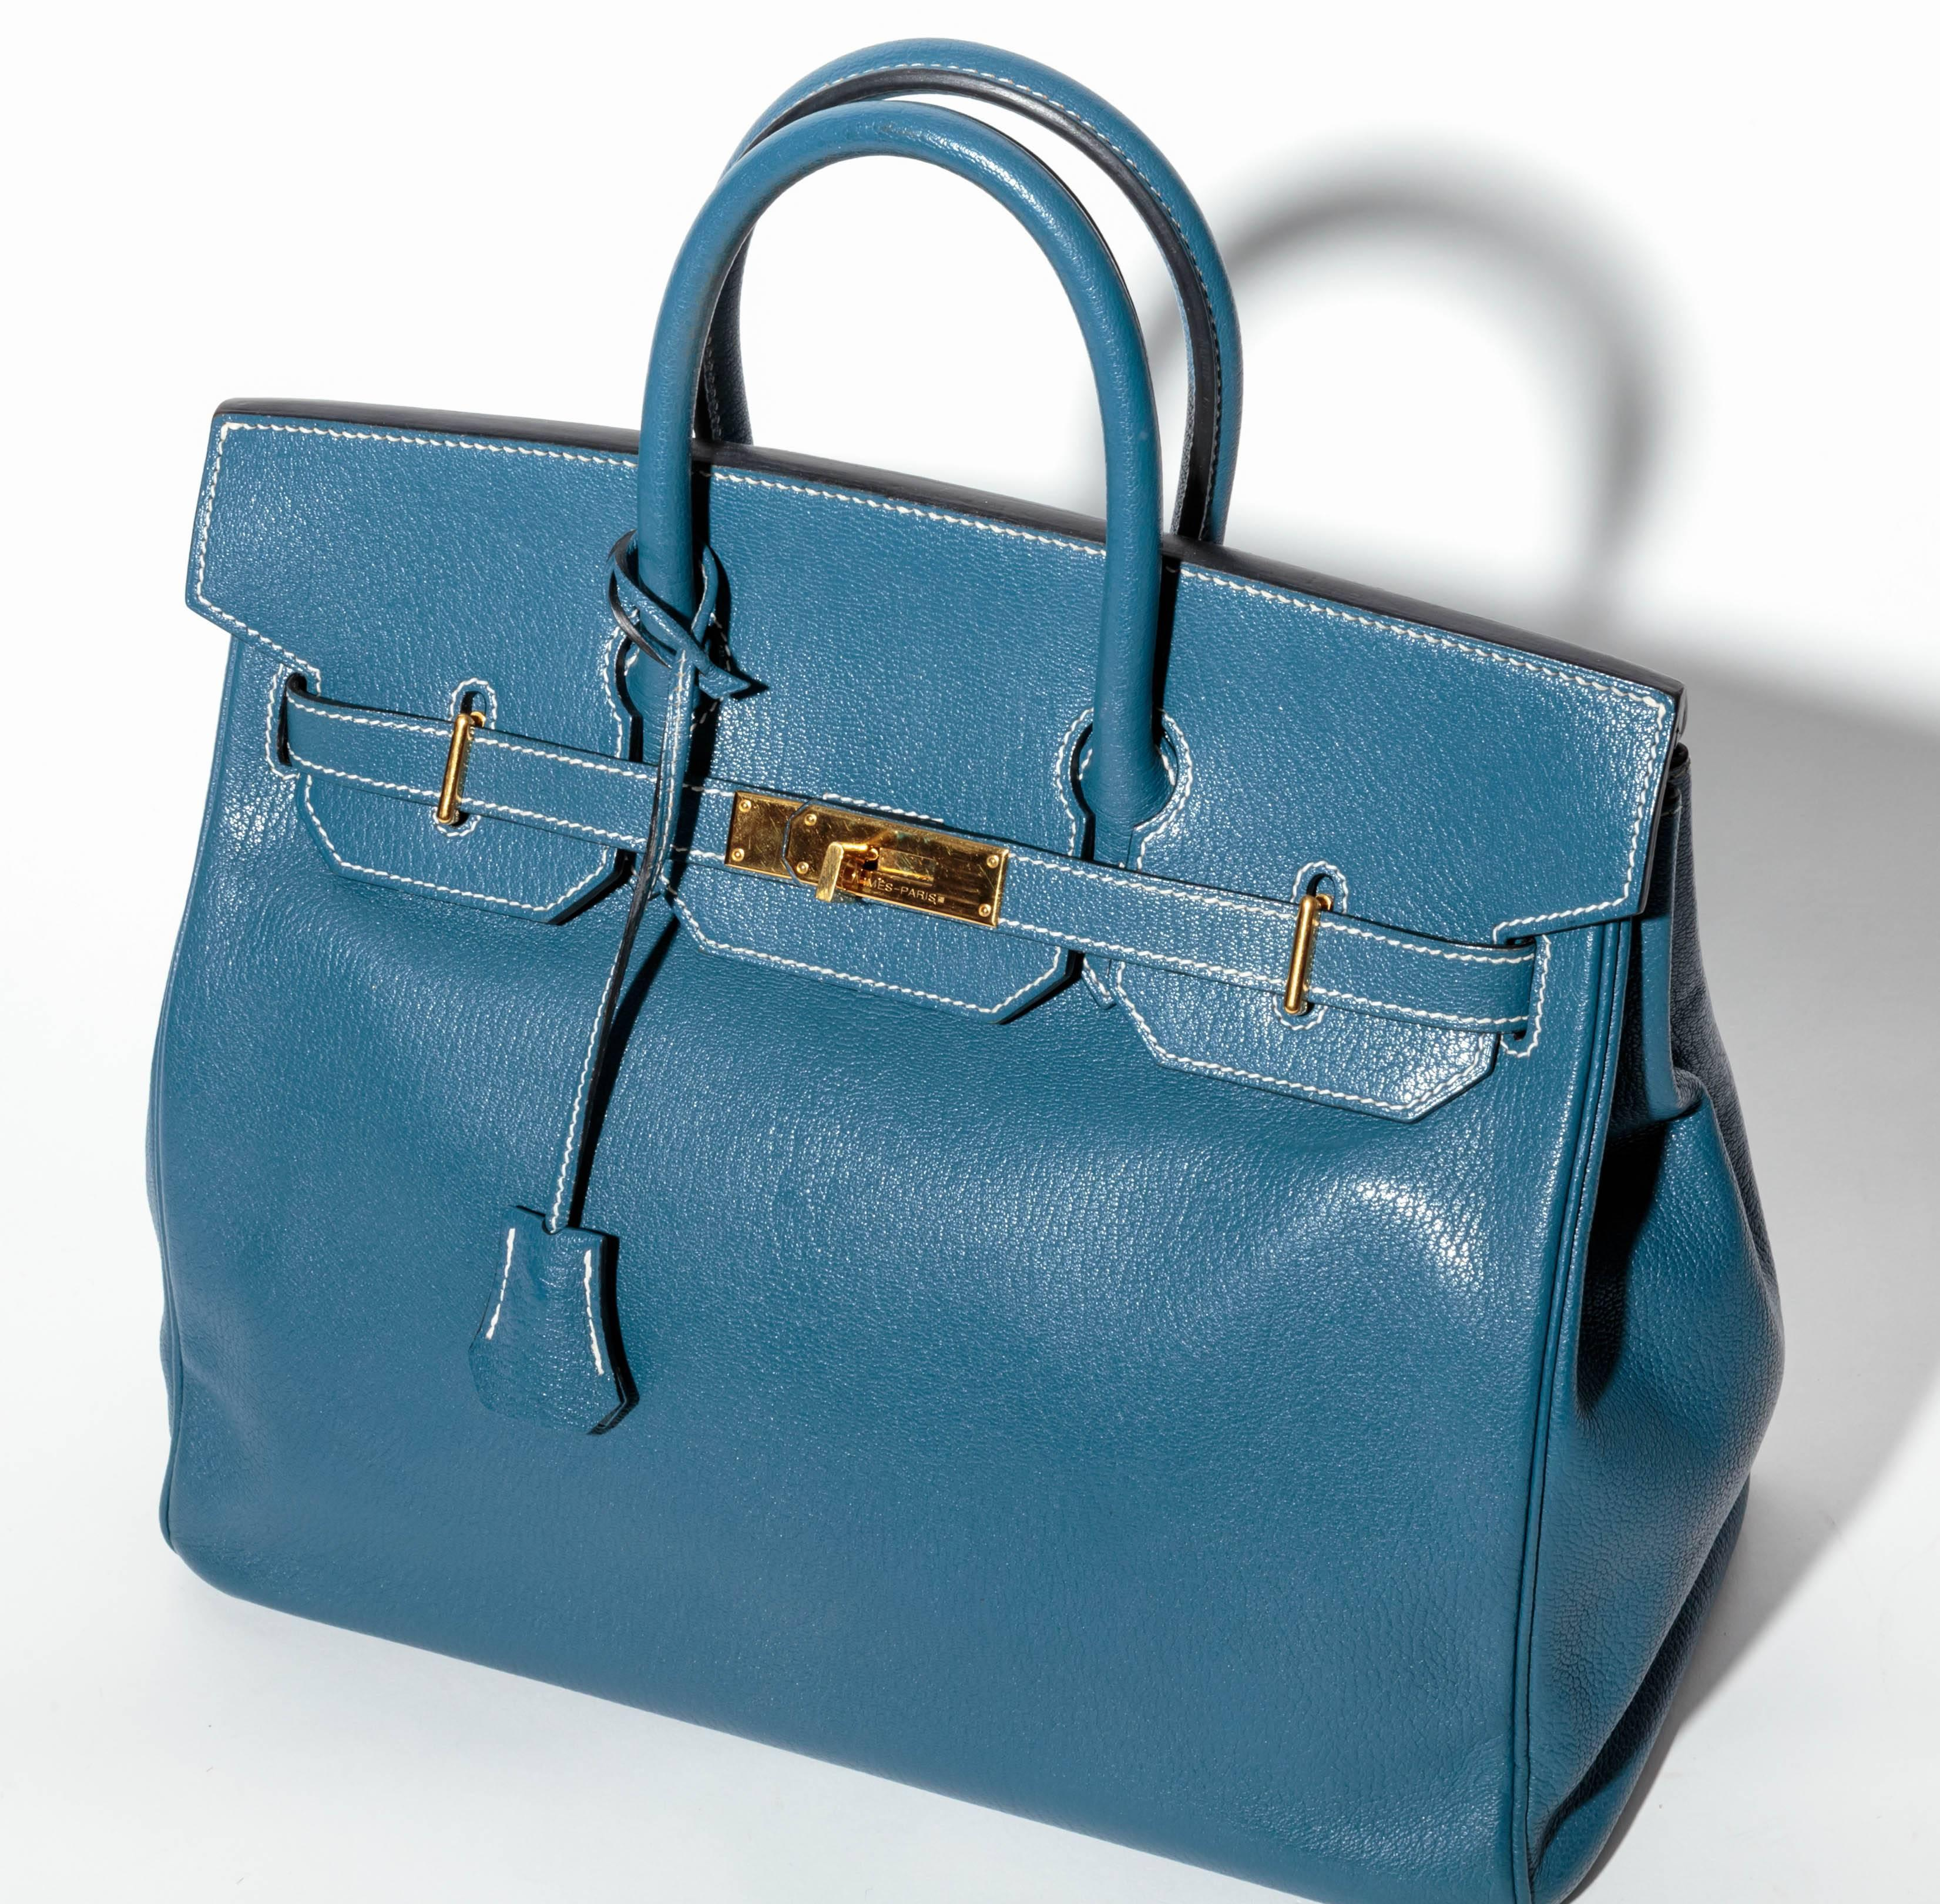 2 fe614 c3fd4  promo code for hermes horseshoe hac birkin in blue thalassa  leather with gold hw for sale 7b4c6bcfaa750